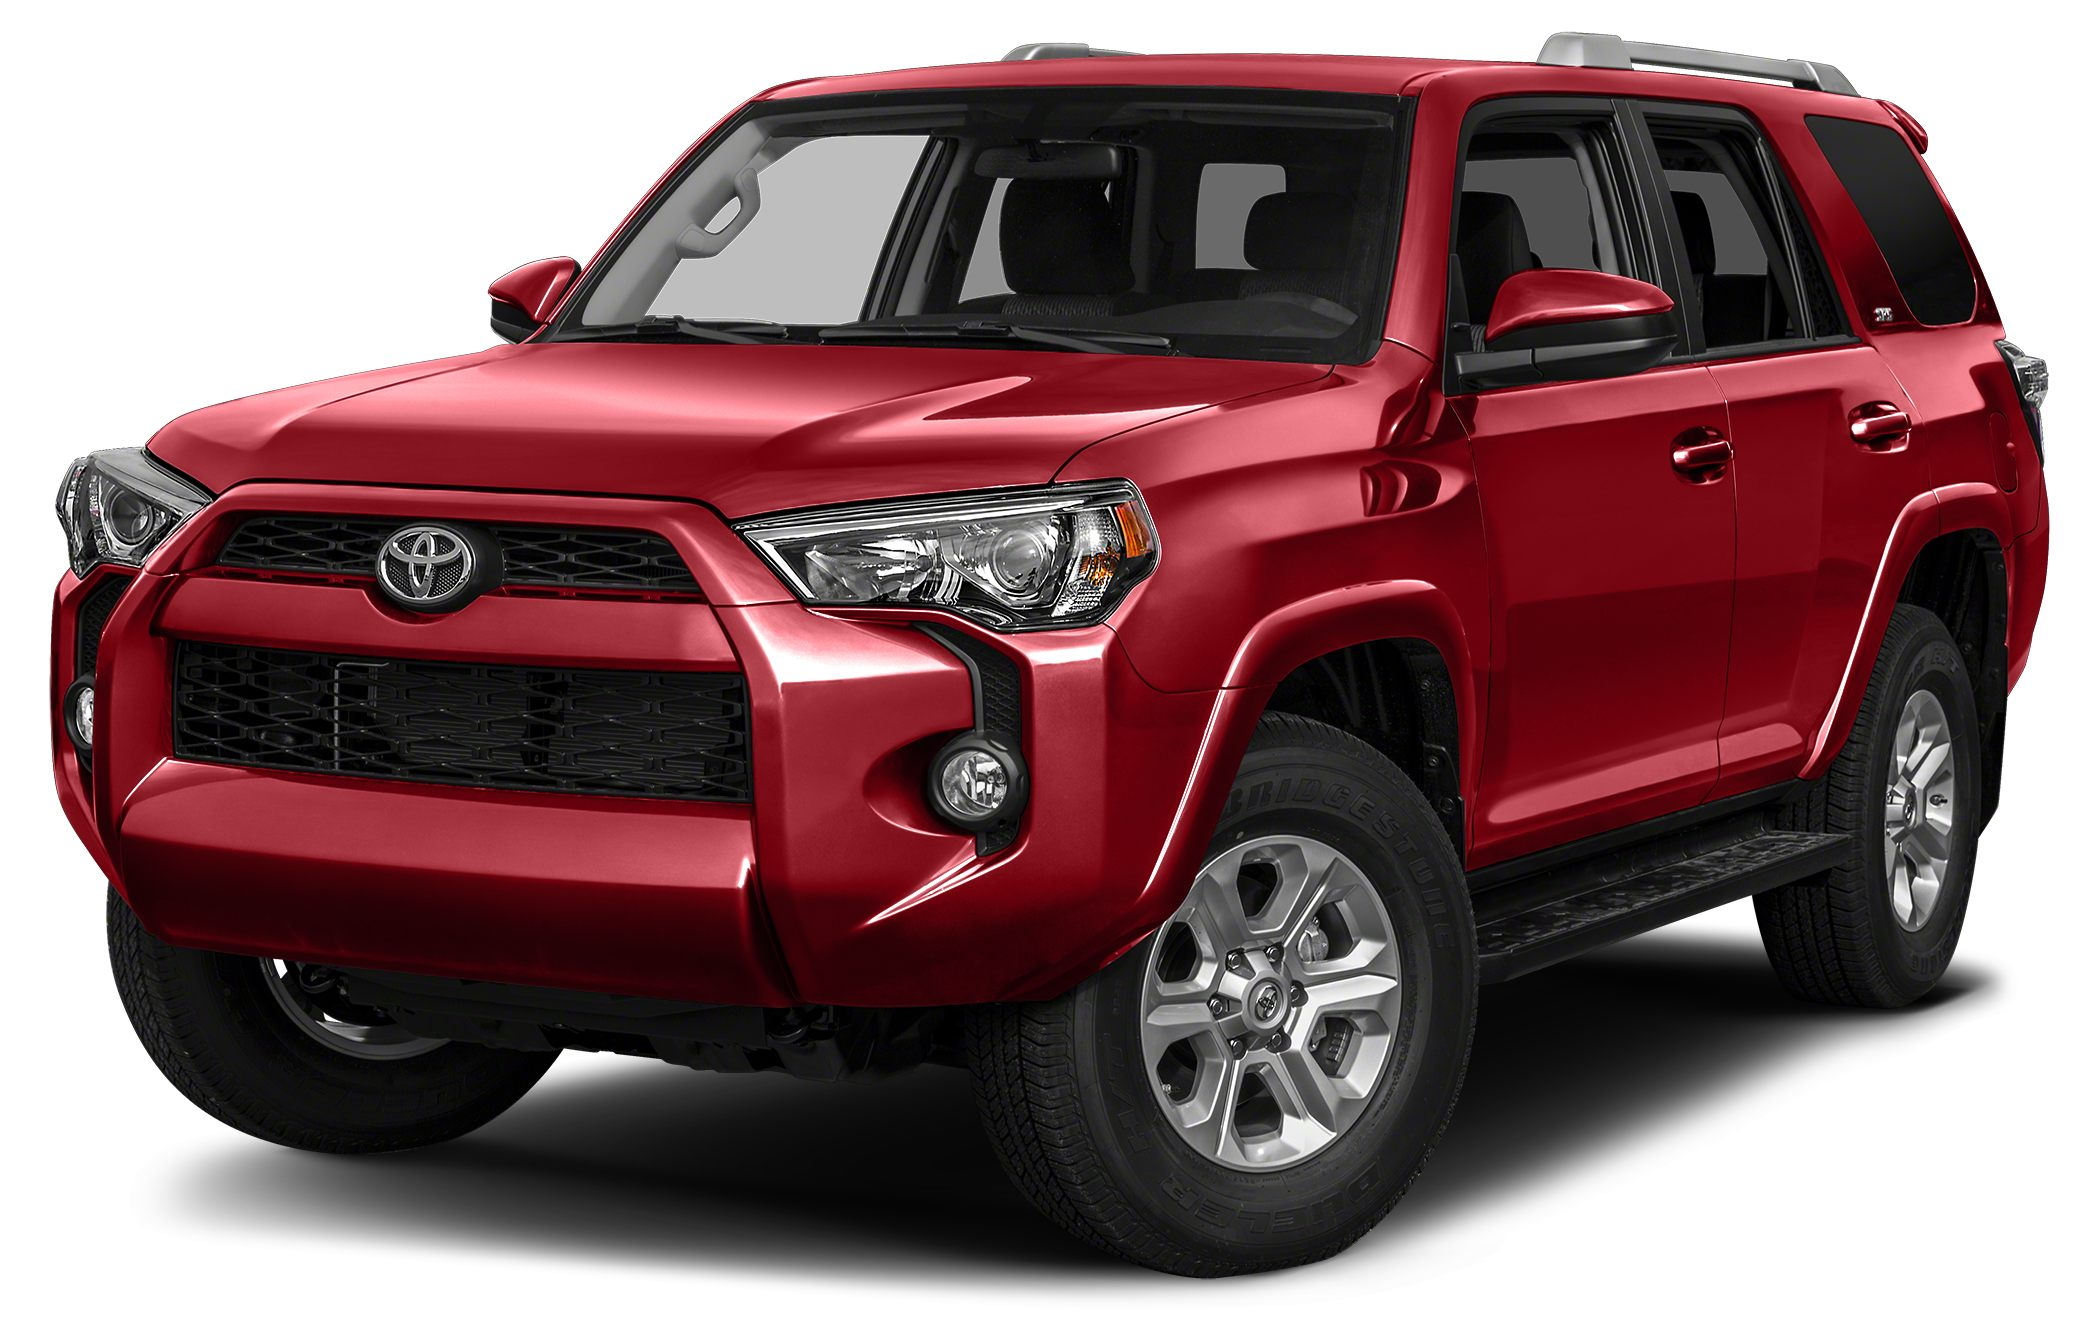 2015 Toyota 4Runner SR5 Grab a deal on this 2015 Toyota 4Runner SR5 while we have it Spacious yet